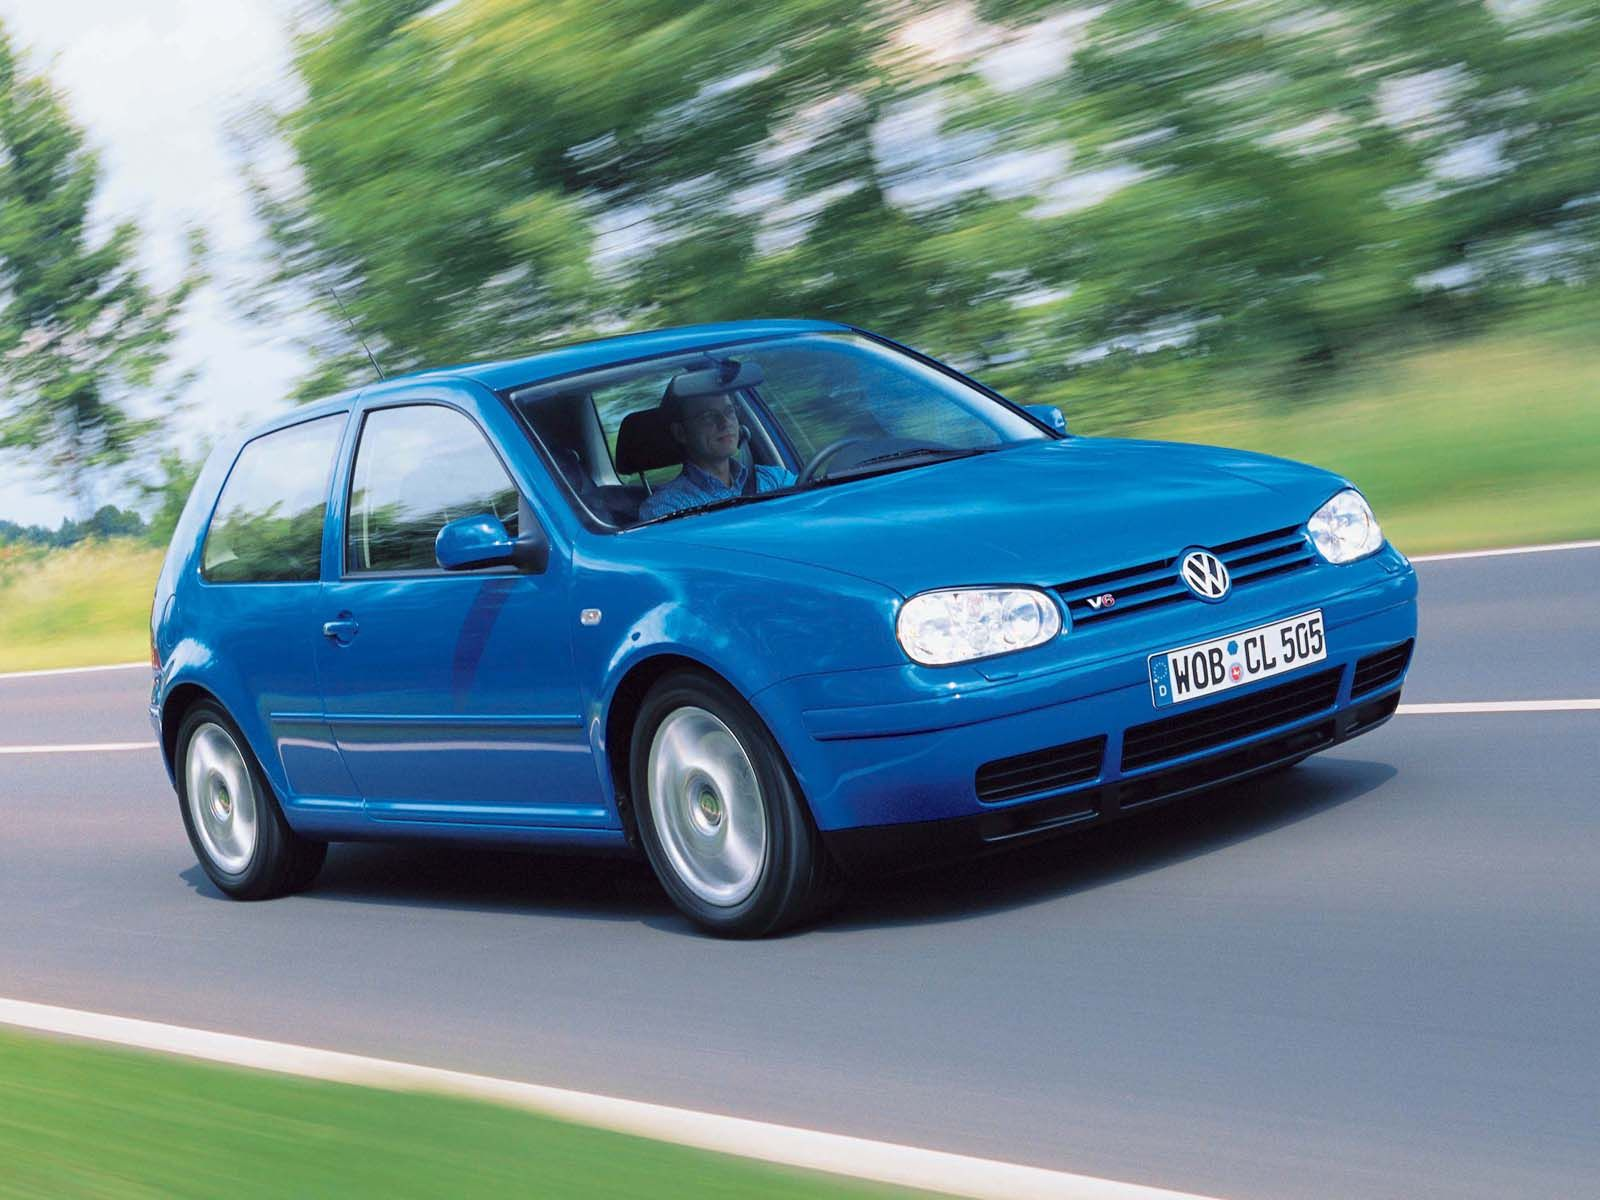 1998 Volkswagen Golf Hatchback 3-door